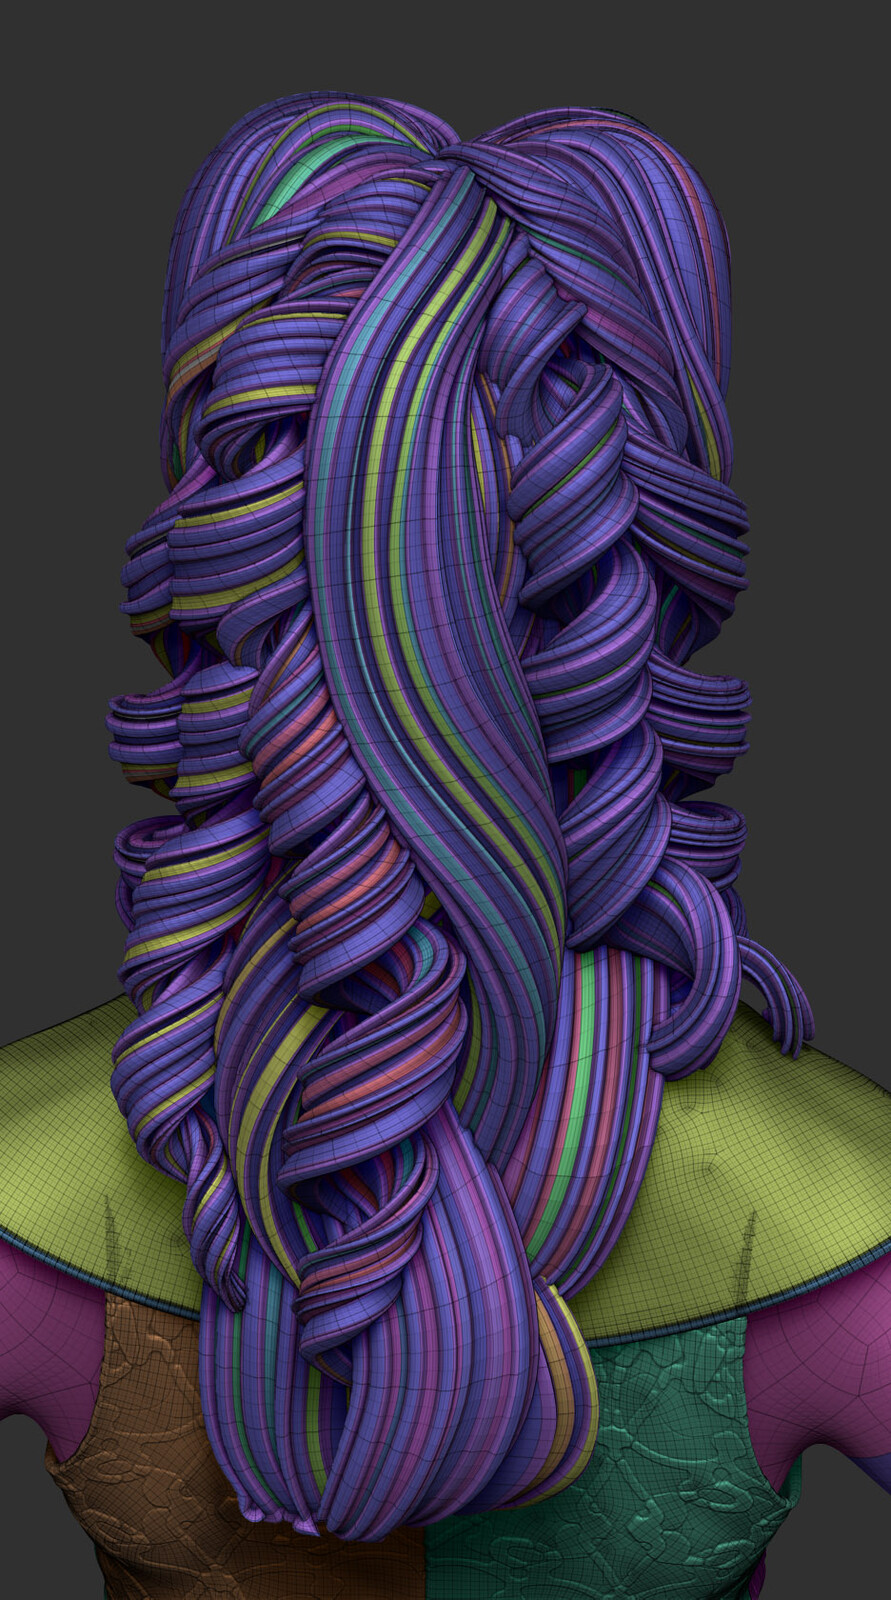 Curve brushes to do the hair are key to a nice polygrouping, unwrapping and painting. In this case I extruded certain loops to reach the volume effect.